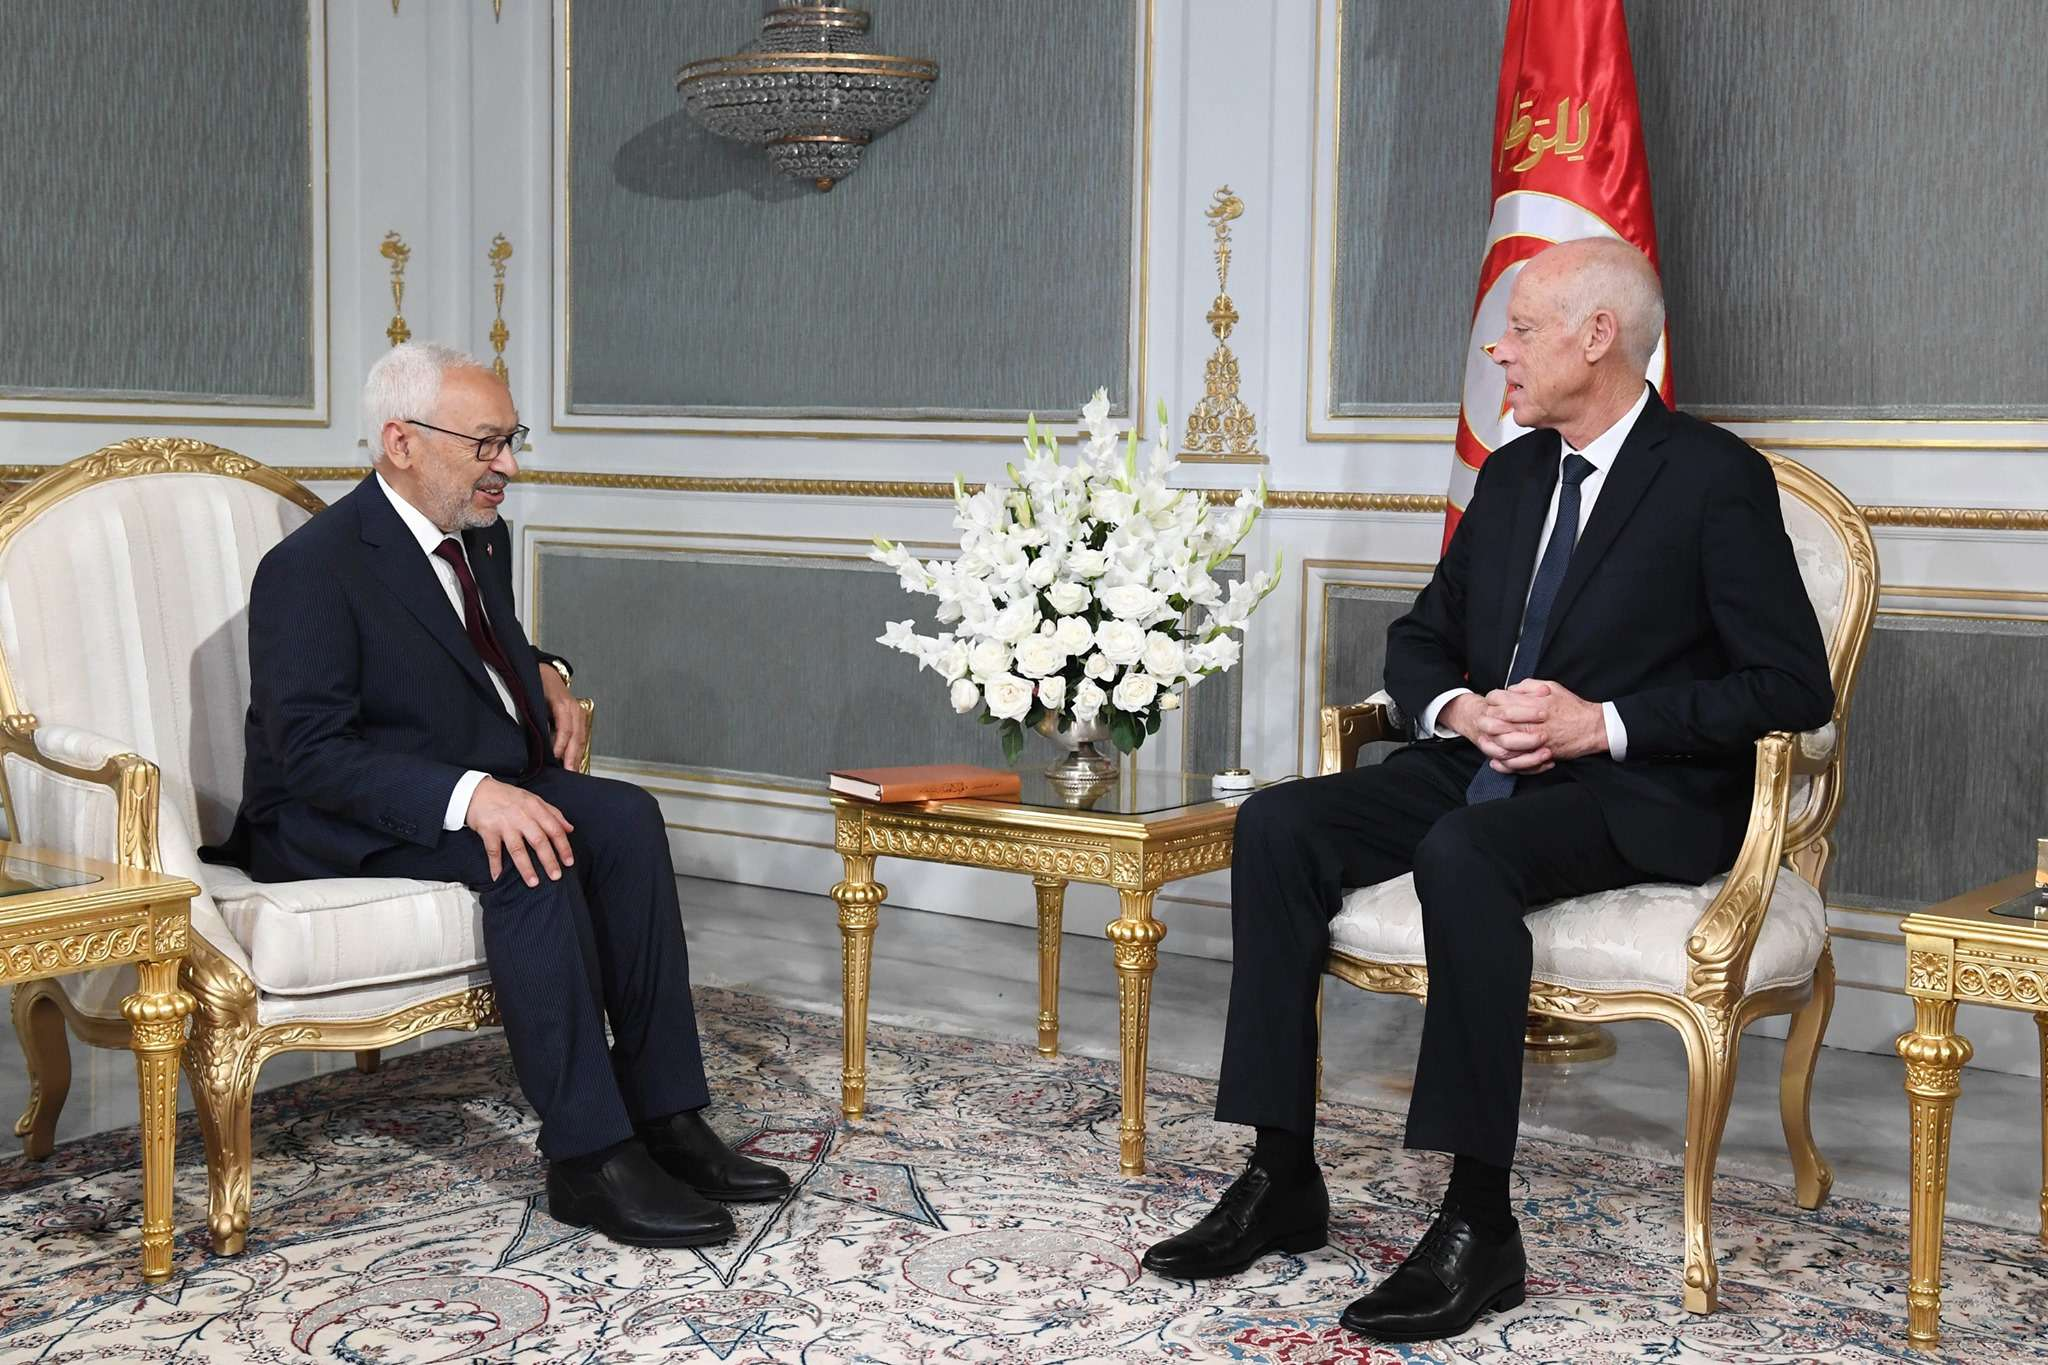 Calling the shots. Tunisian President Kais Saied (R) meets with Rached Ghannouchi, head of Ennahda movement at the Carthage Palace, last October. (DPA)